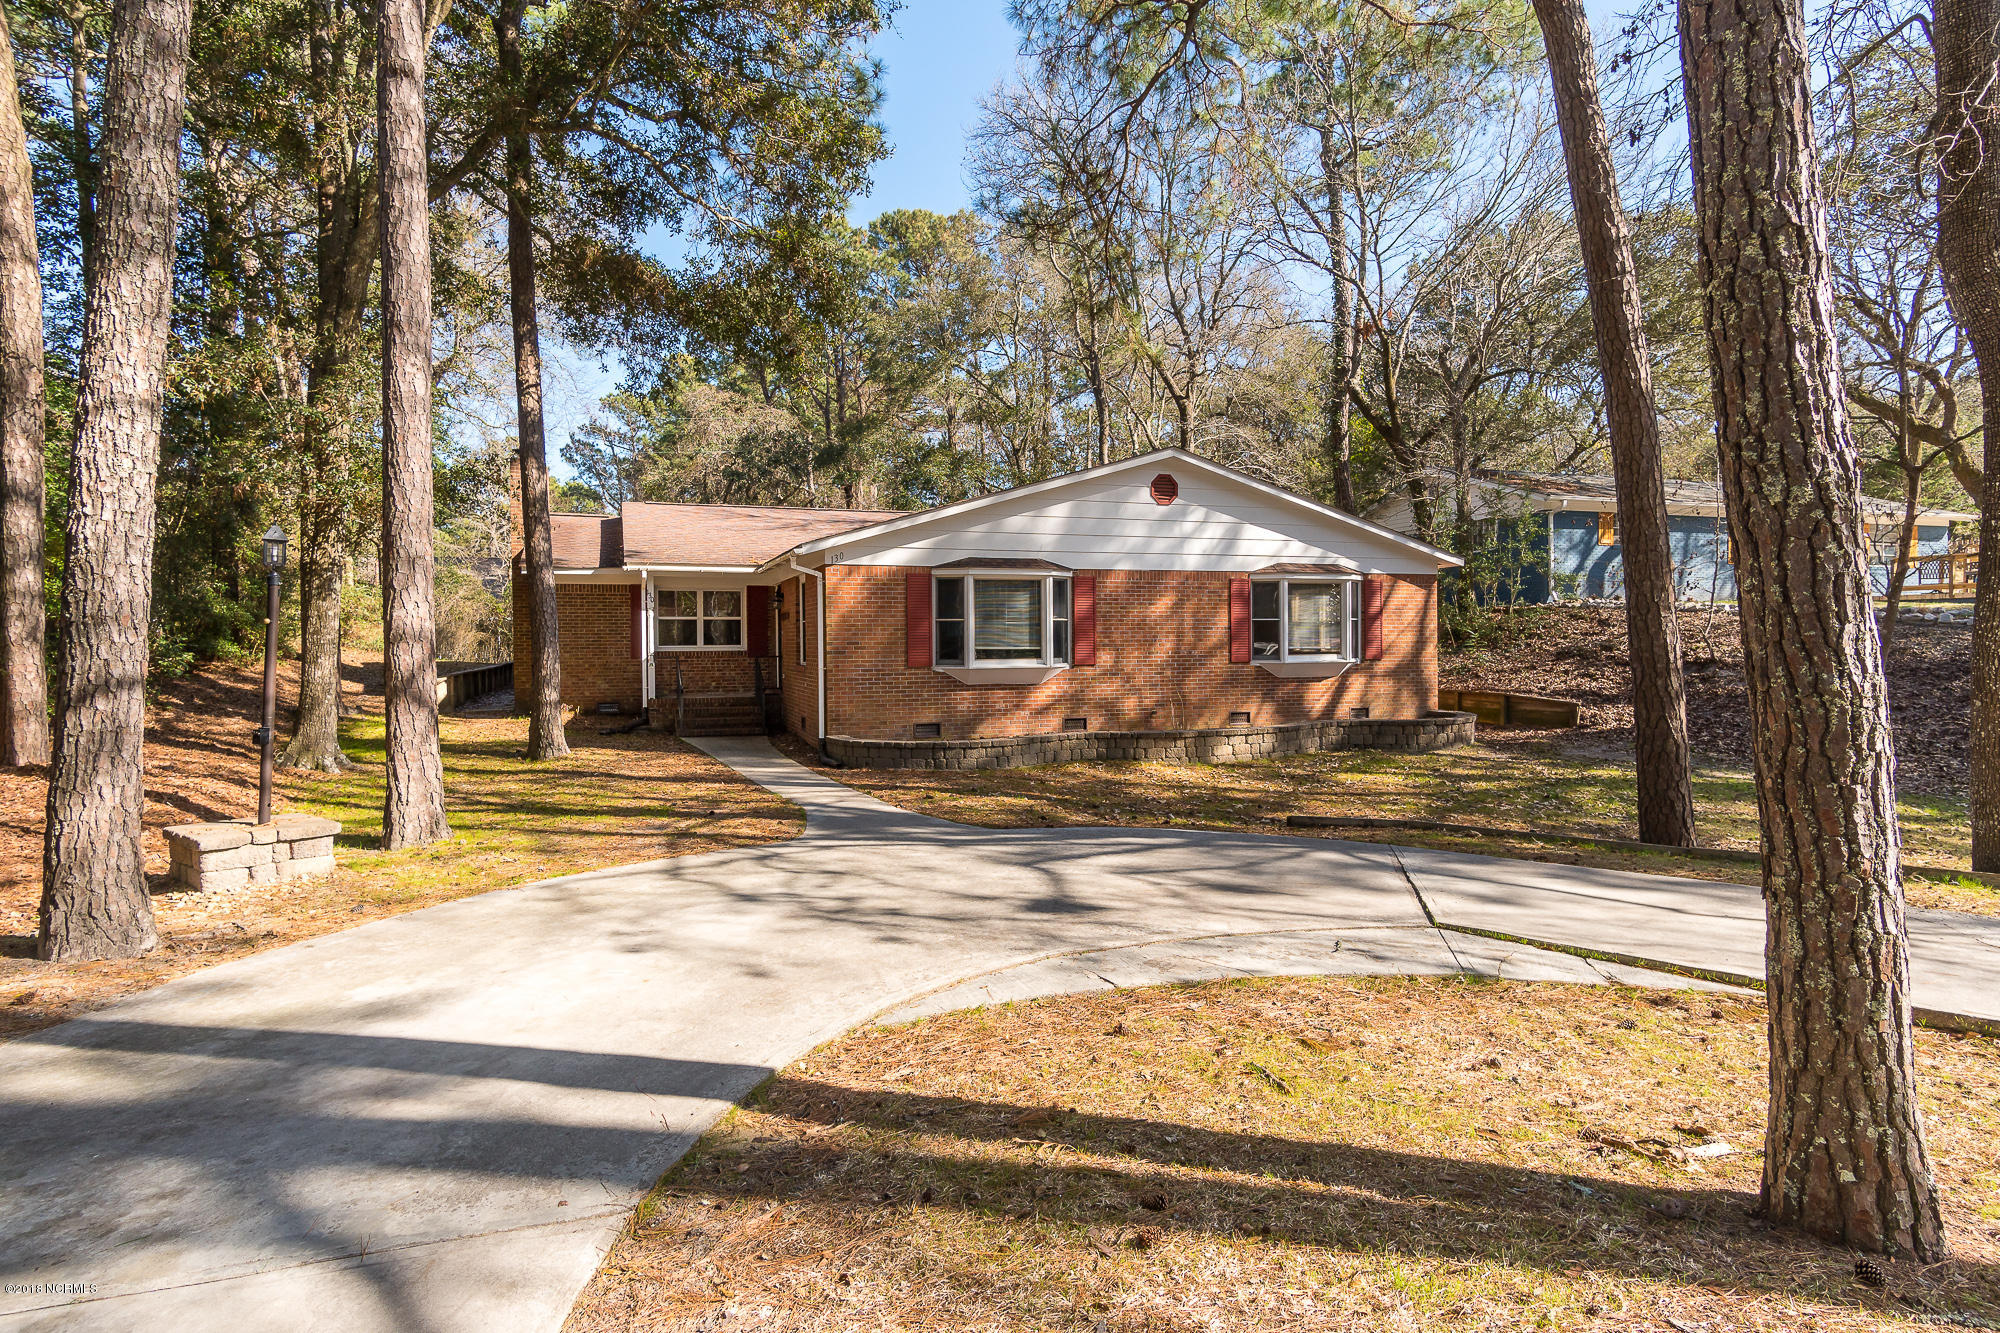 130 Yaupon Road, Pine Knoll Shores, North Carolina, 3 Bedrooms Bedrooms, 7 Rooms Rooms,3 BathroomsBathrooms,Single family residence,For sale,Yaupon,100102225